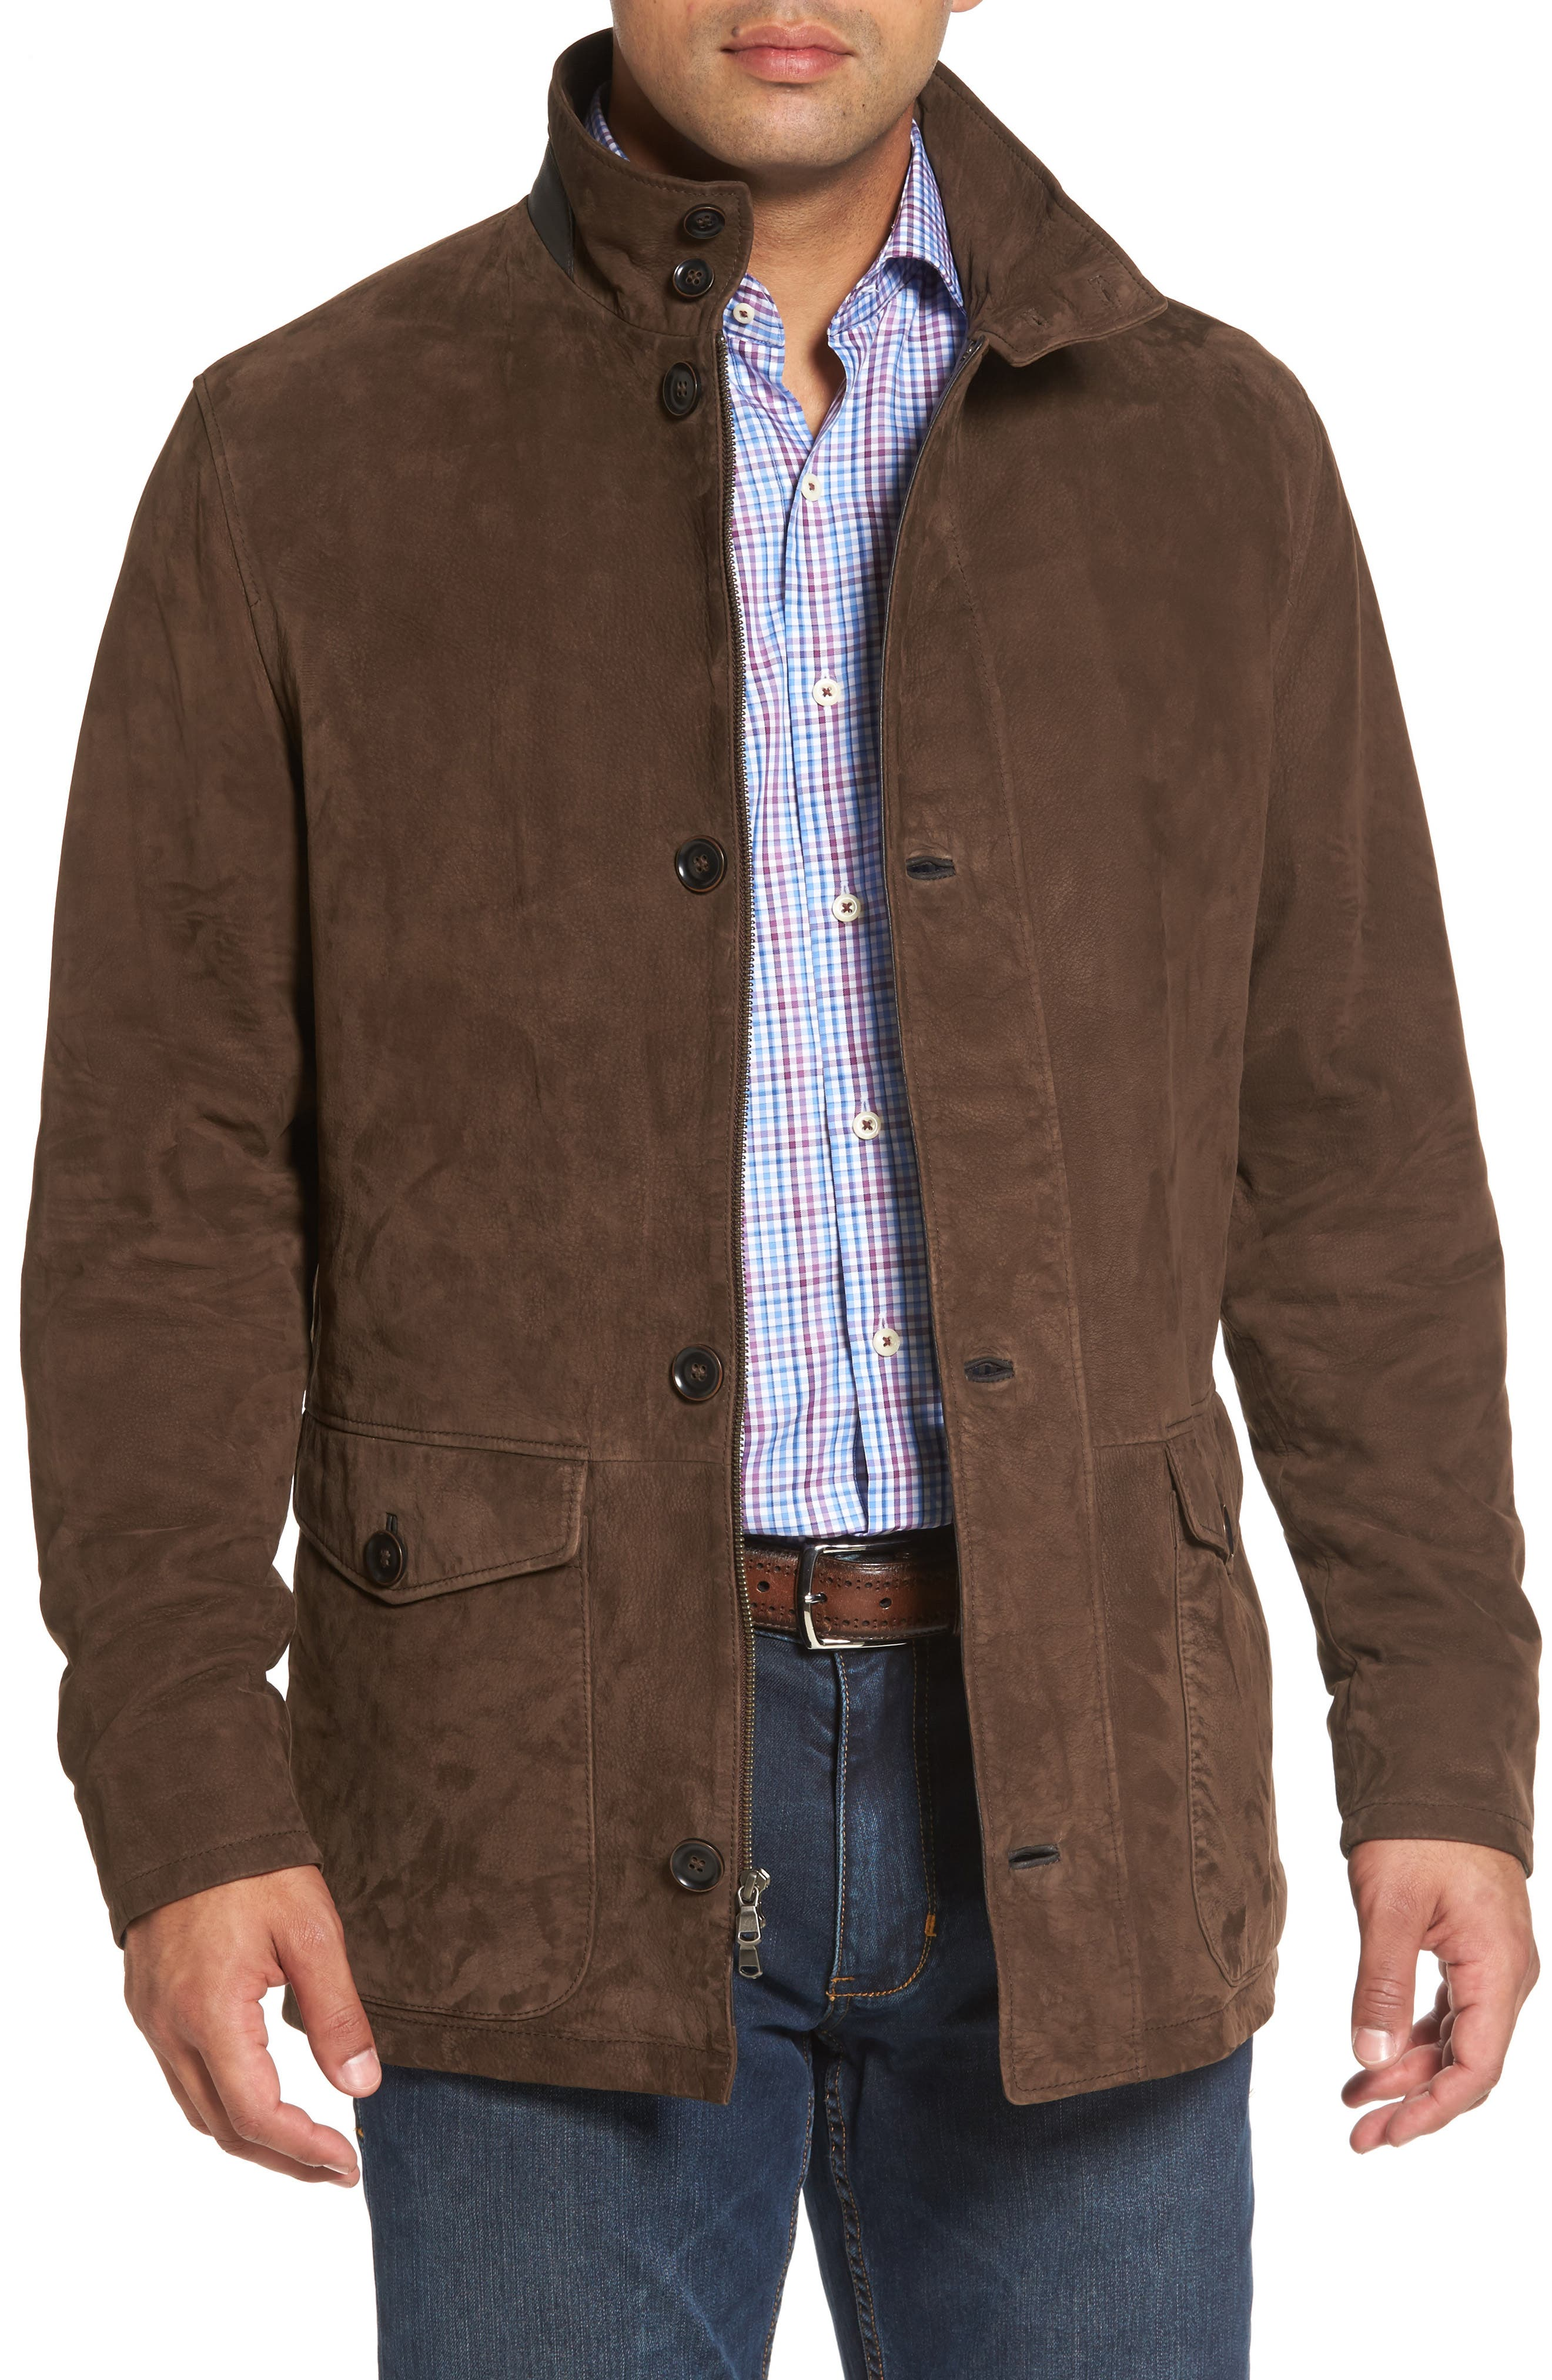 Steamboat Leather Jacket with Genuine Shearling Lined Bib,                             Alternate thumbnail 4, color,                             227